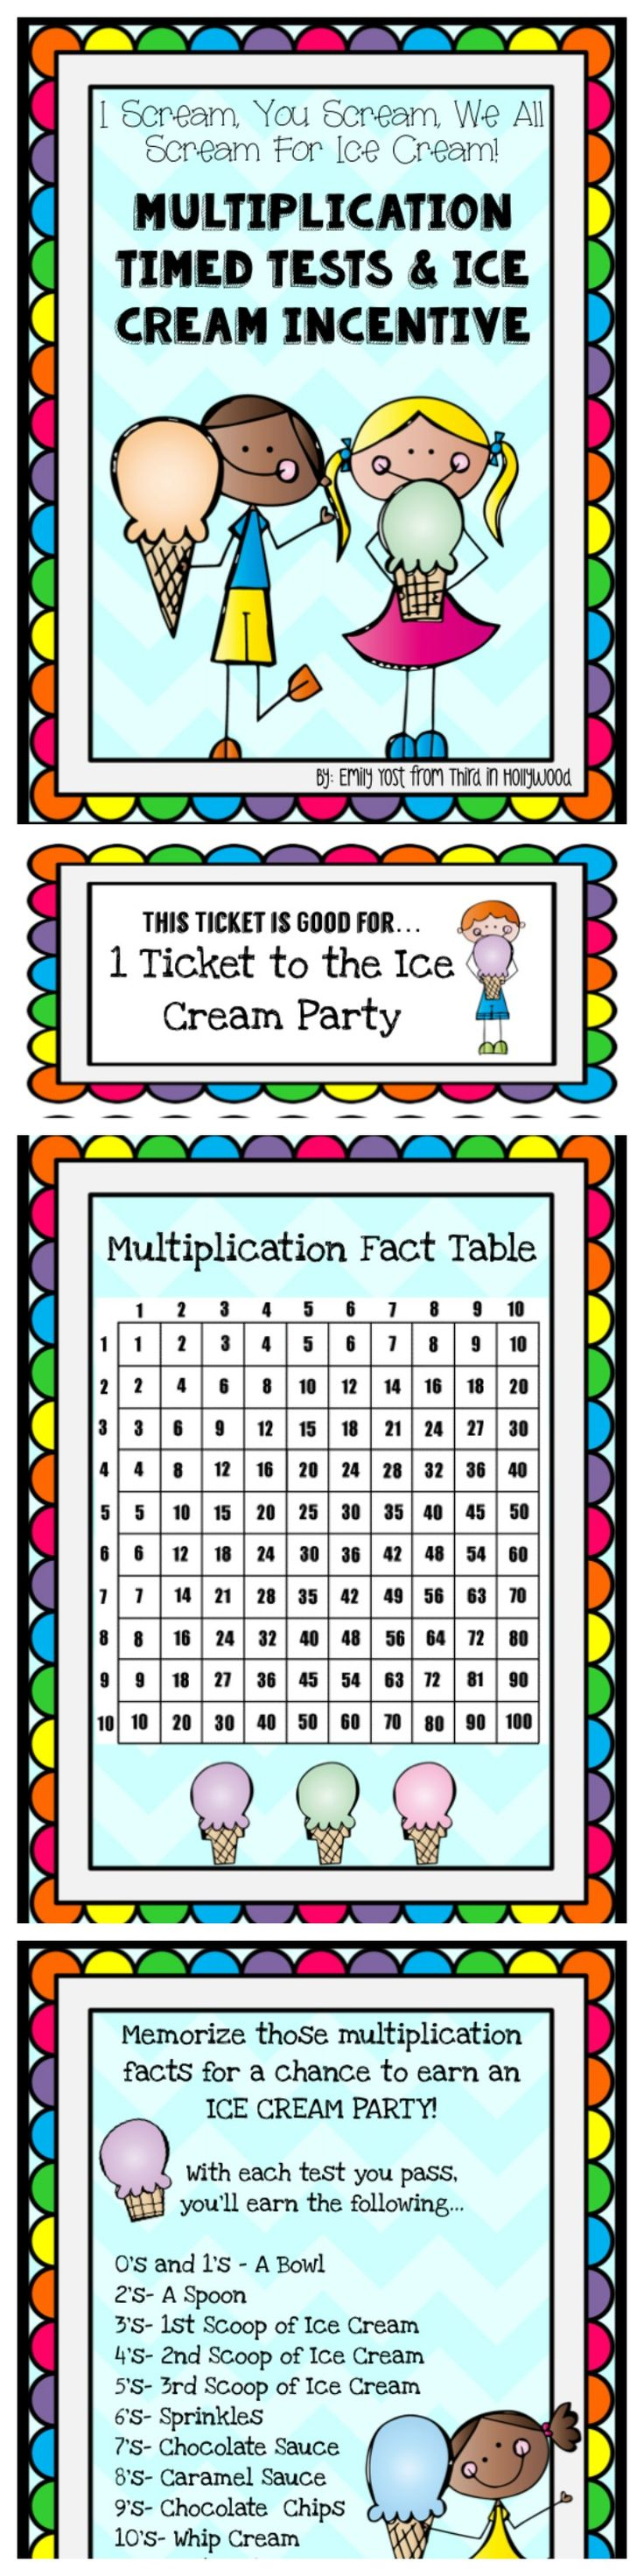 Multiplication tests ice cream incentive